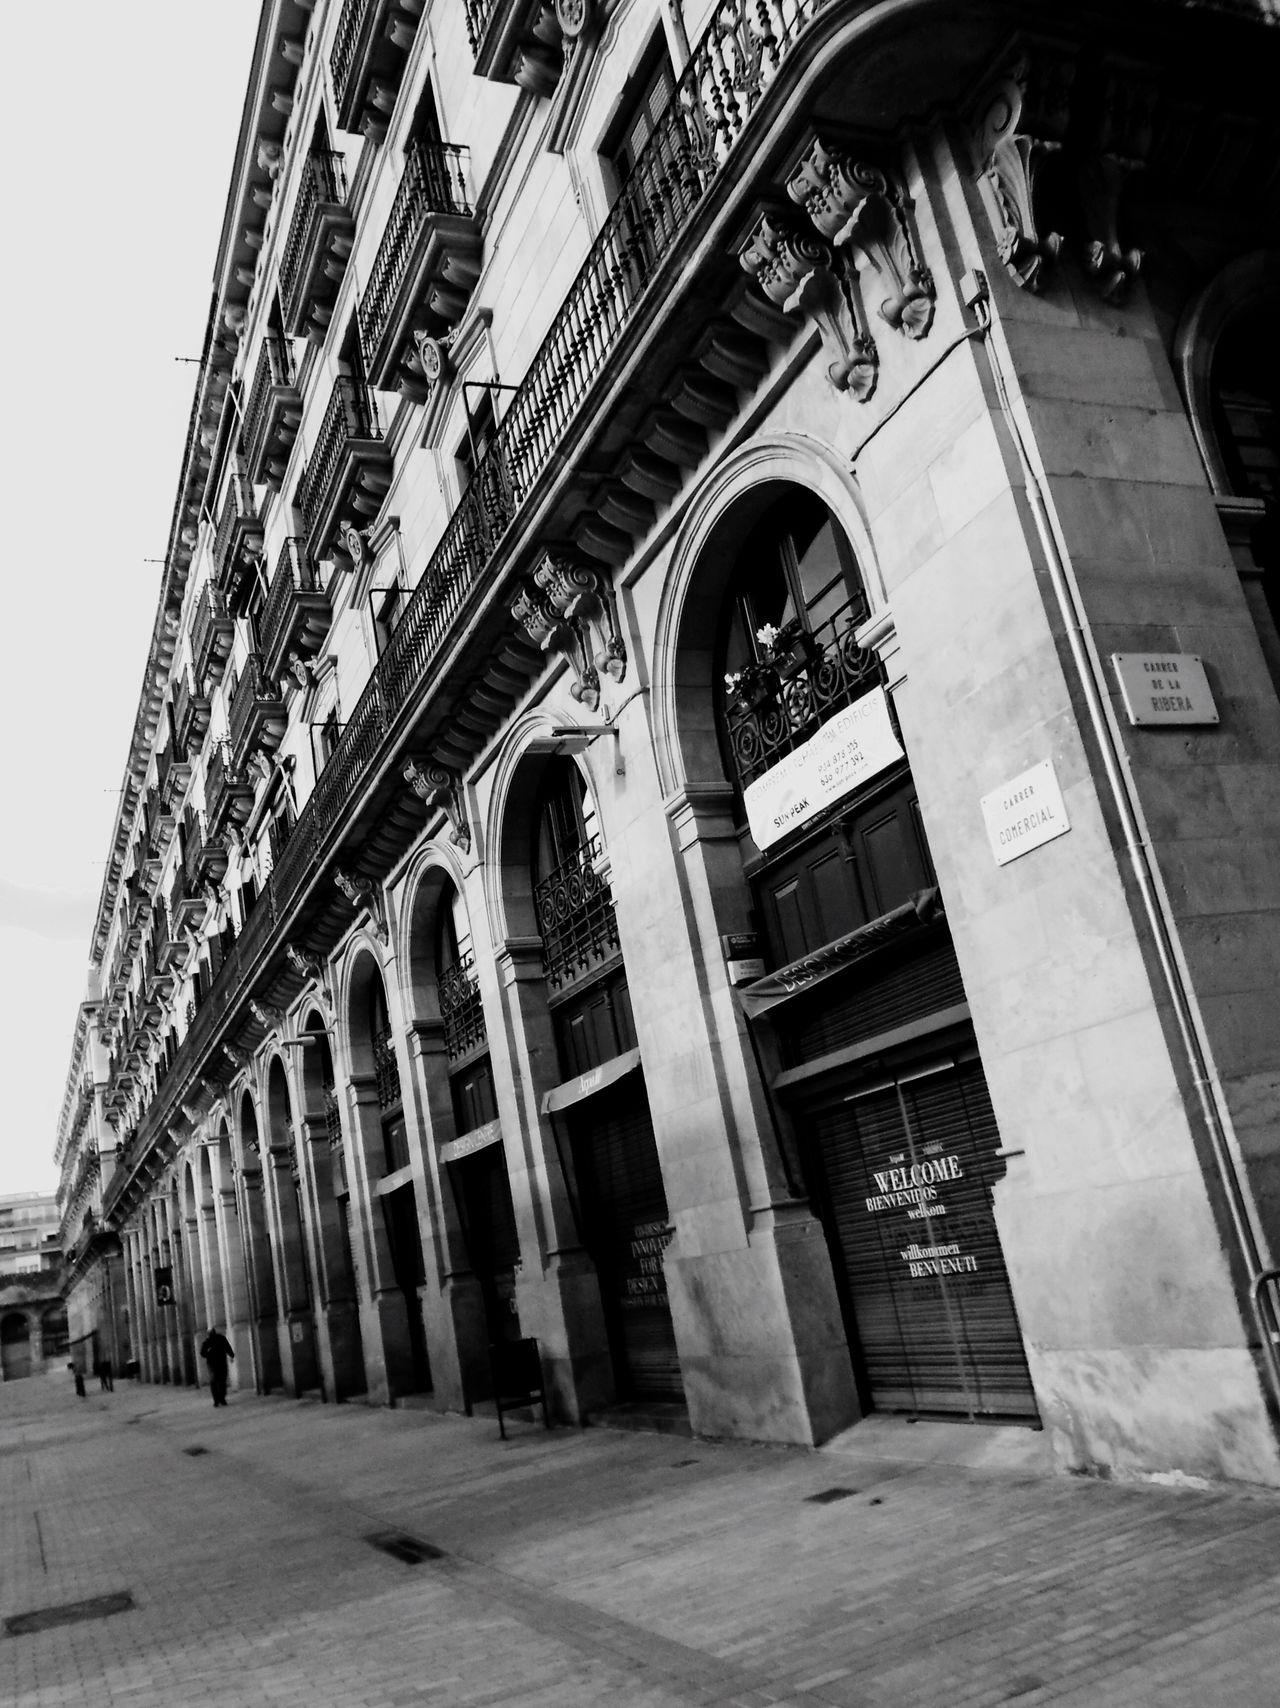 Architecture Building Exterior Built Structure No People Outdoors Day City Barcelona Perspective Streetphotography EyeEm Bnw Eye4photography  EyeEm Gallery Urban Geometry